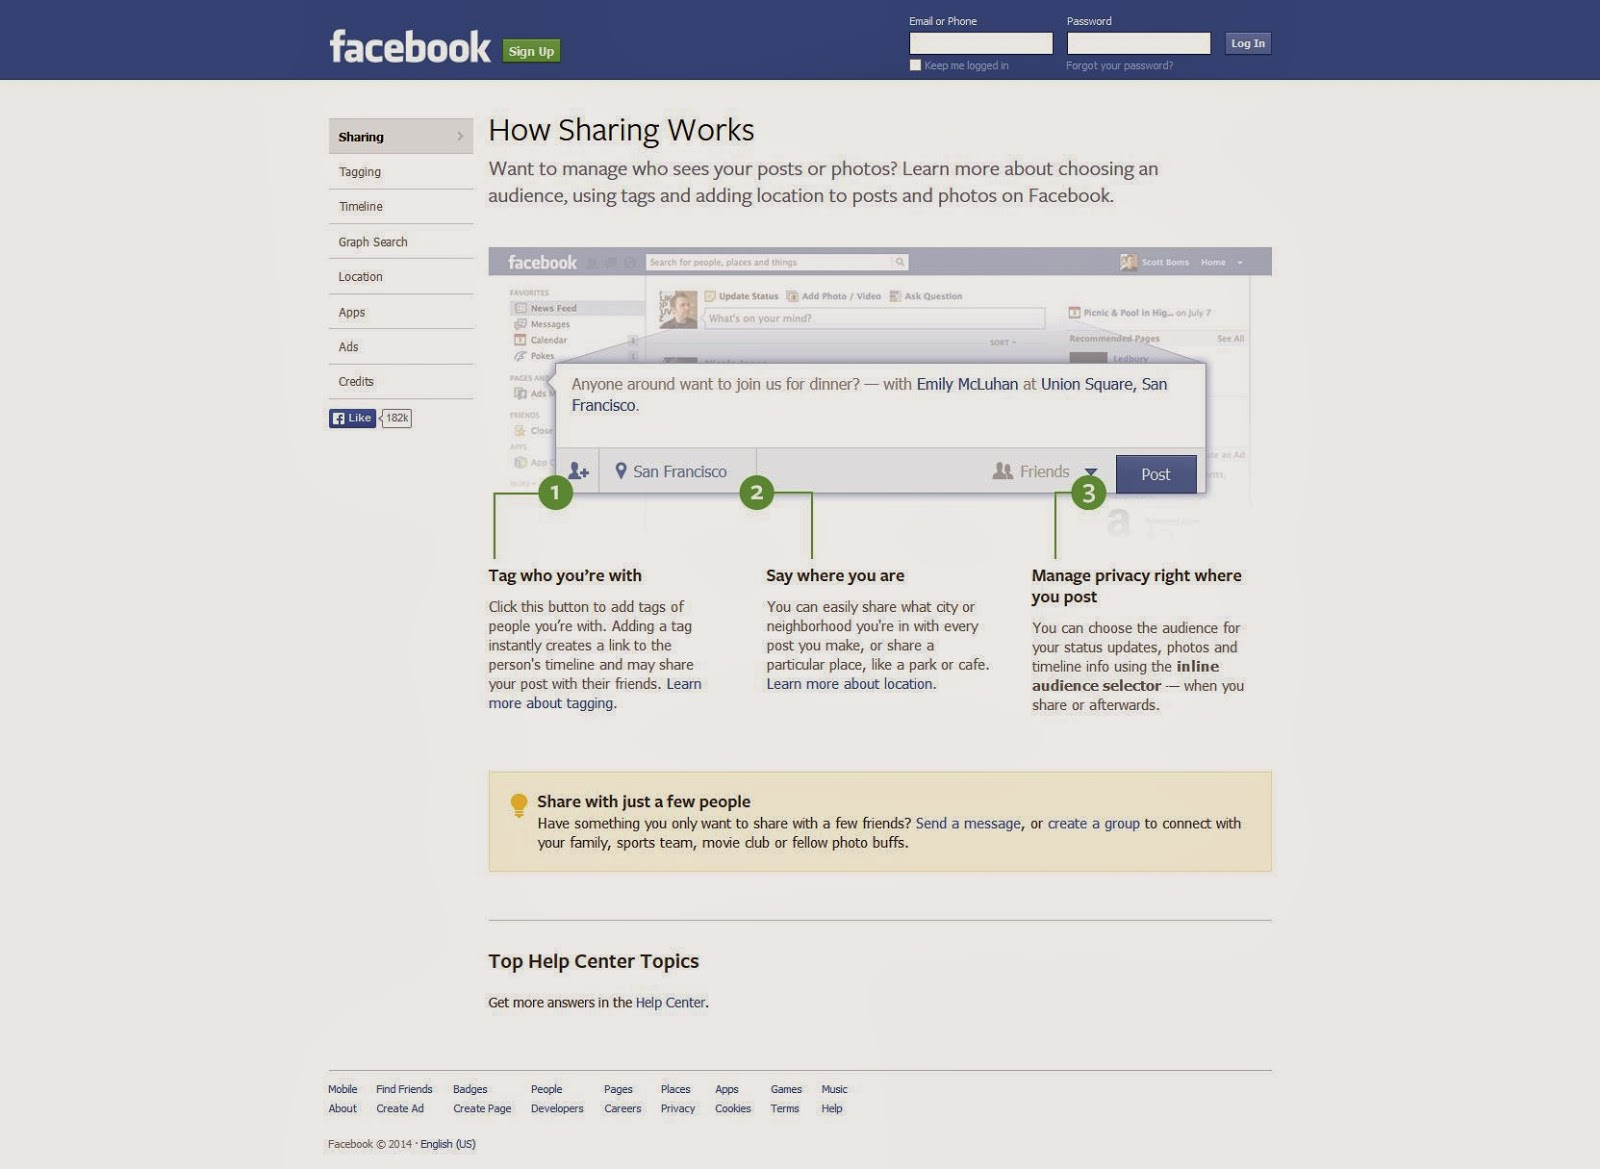 Welcome to Facebook - Log In, Sign Up or Learn More